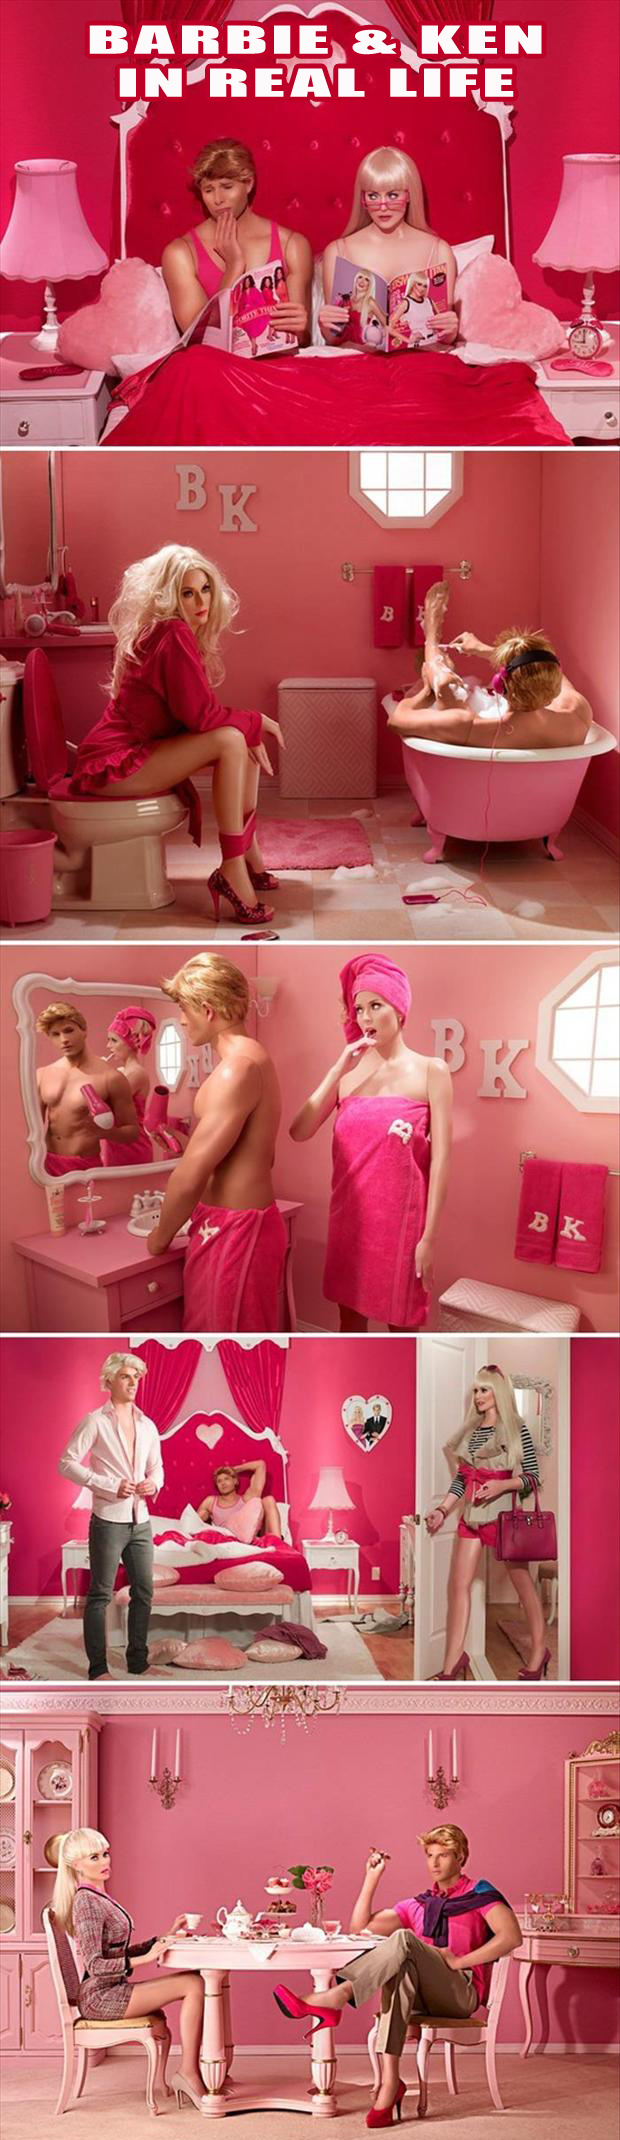 barbie and ken in real life, funny pictures